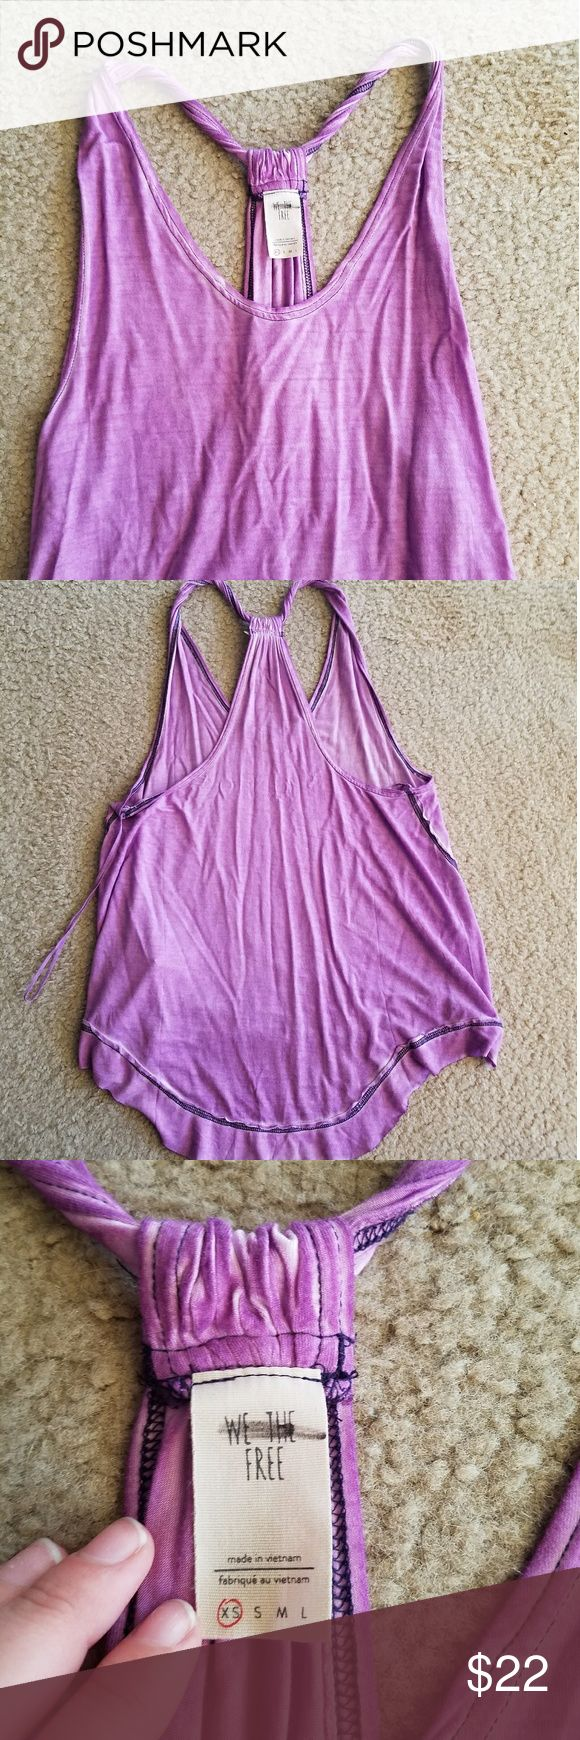 Free People Purple Tank New without tags racerback style tank top from the Free People brand we the free. A little longer in the back than the front. Size extra small Free People Tops Tank Tops